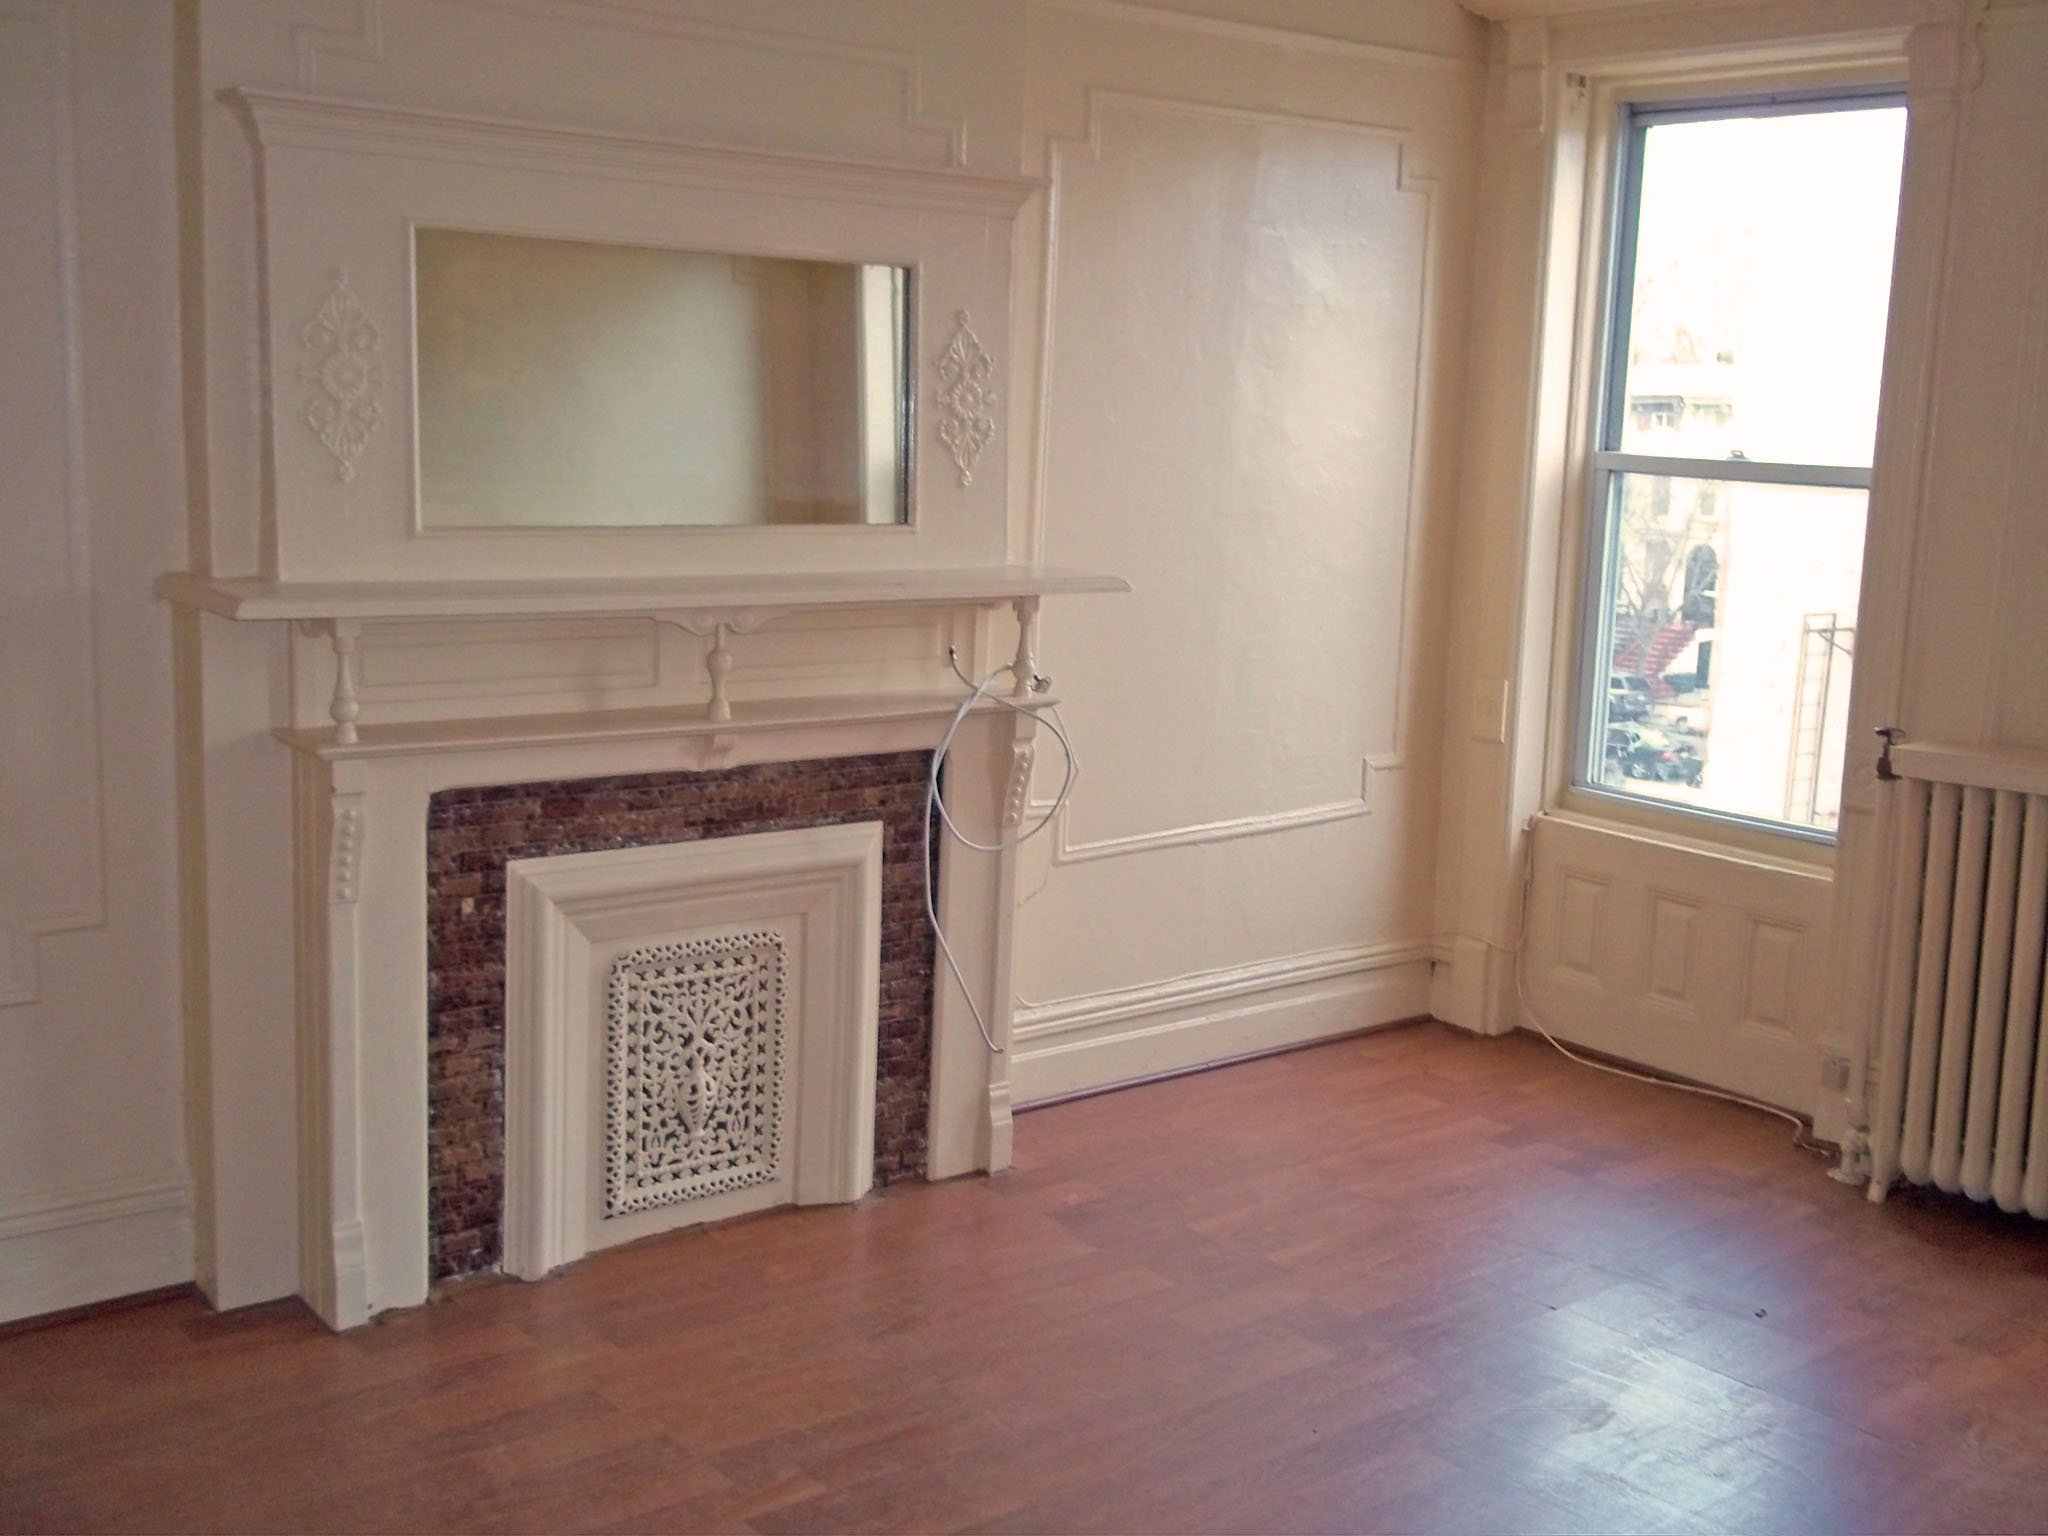 Bedford stuyvesant 1 bedroom apartment for rent brooklyn for 1 bedroom apartment for rent